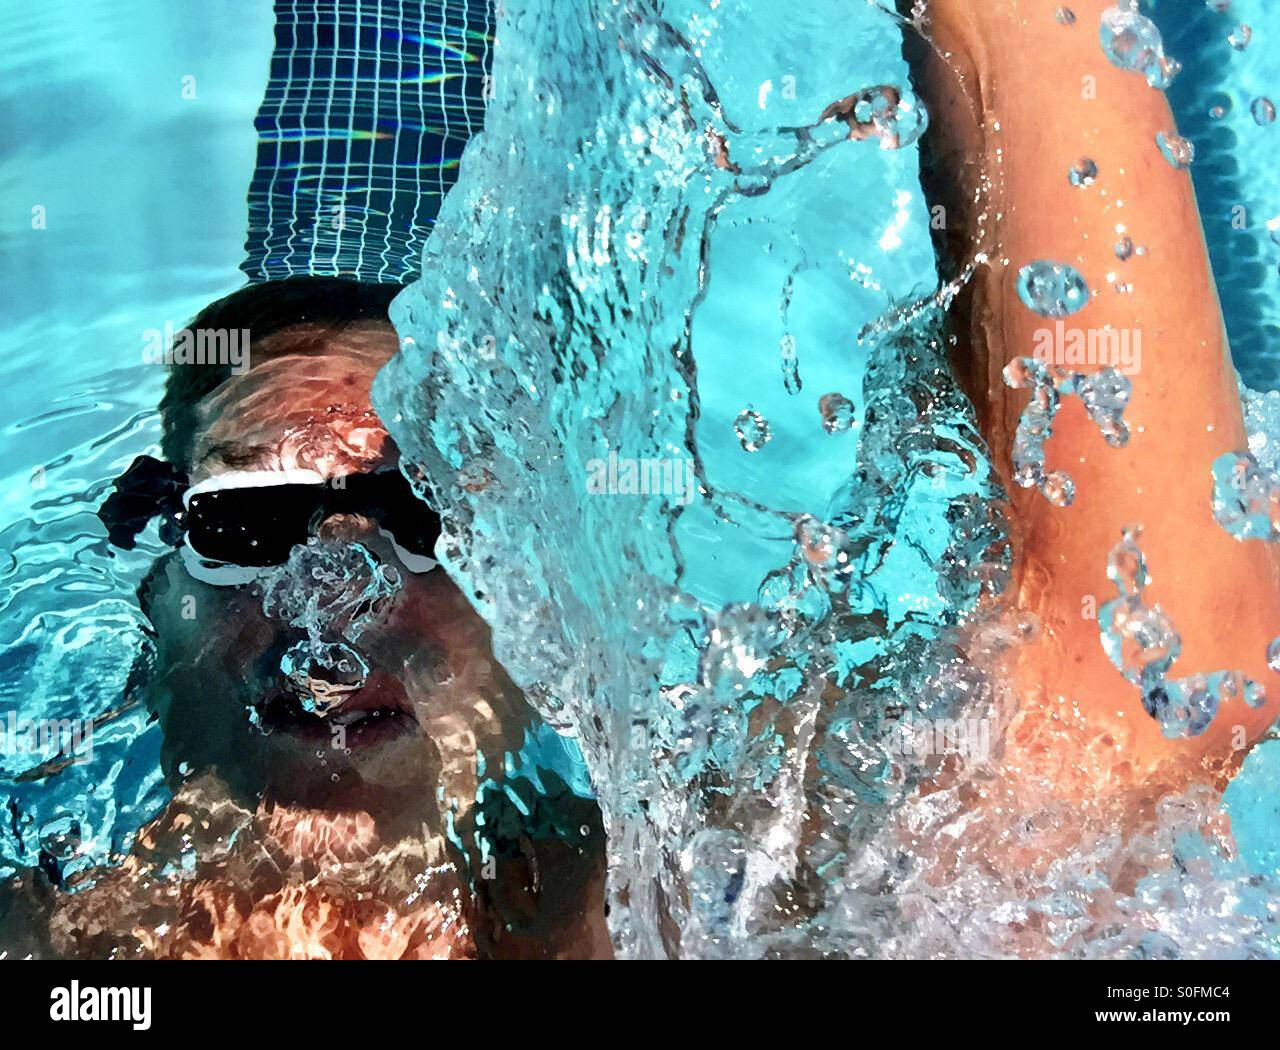 Closeup top view above water splash from male swimmer, mid- backstroke in an outdoor Olympic 25 meter swimming pool. - Stock Image